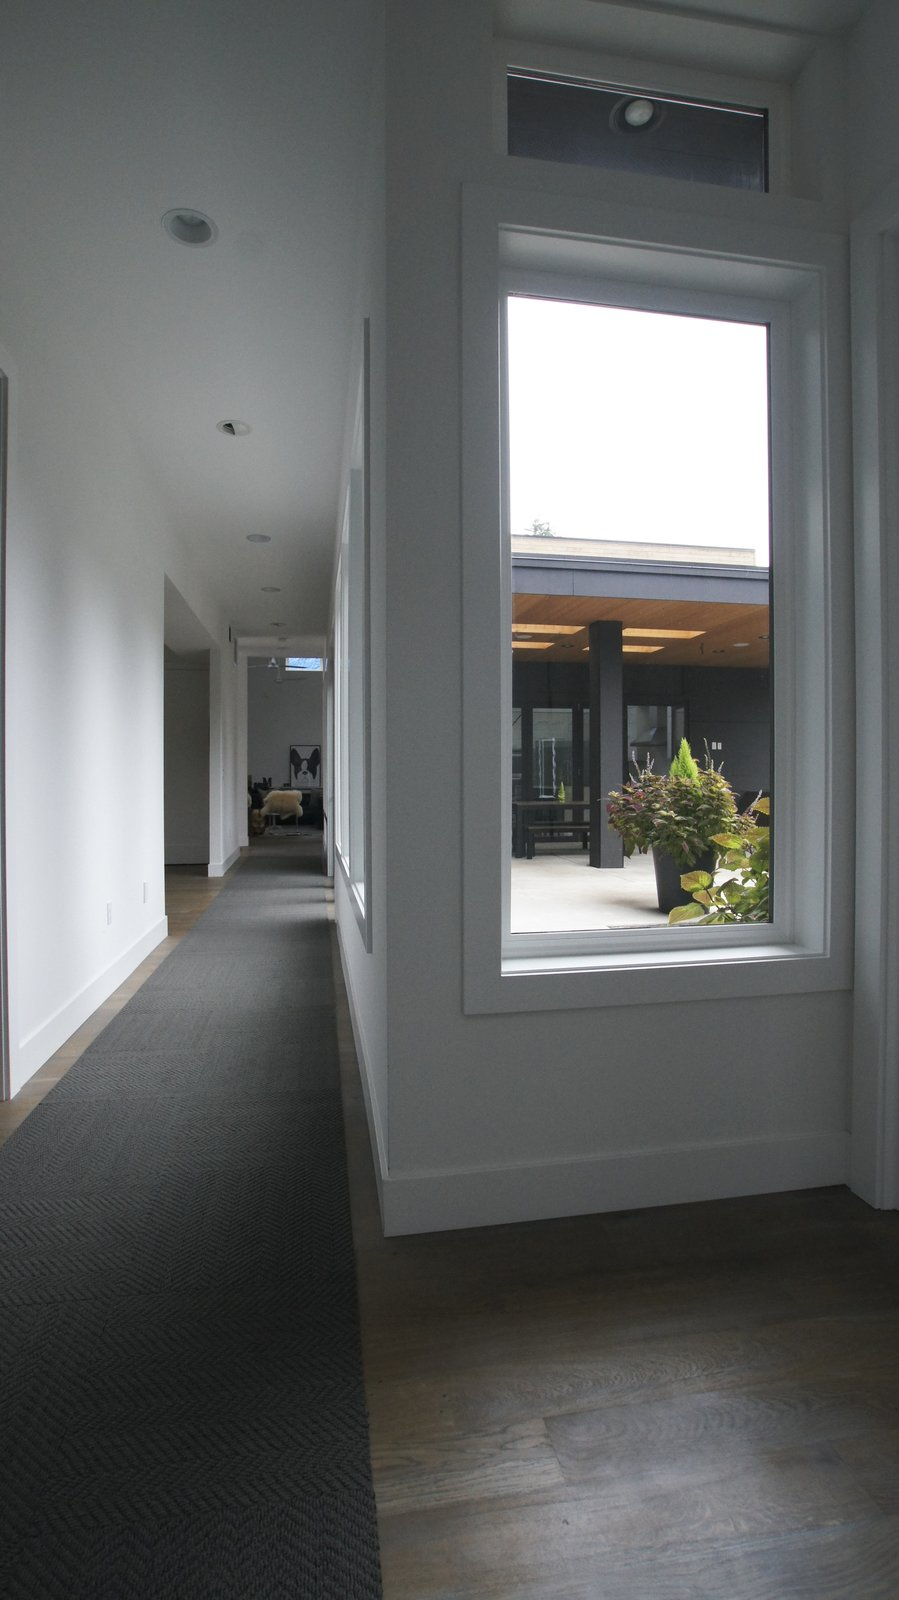 The windows along the hallway prevent it from feeling too narrow or gloomy. The space transforms into an elegant stretch of space filled with light and becomes much more than just a utilitarian hallway.